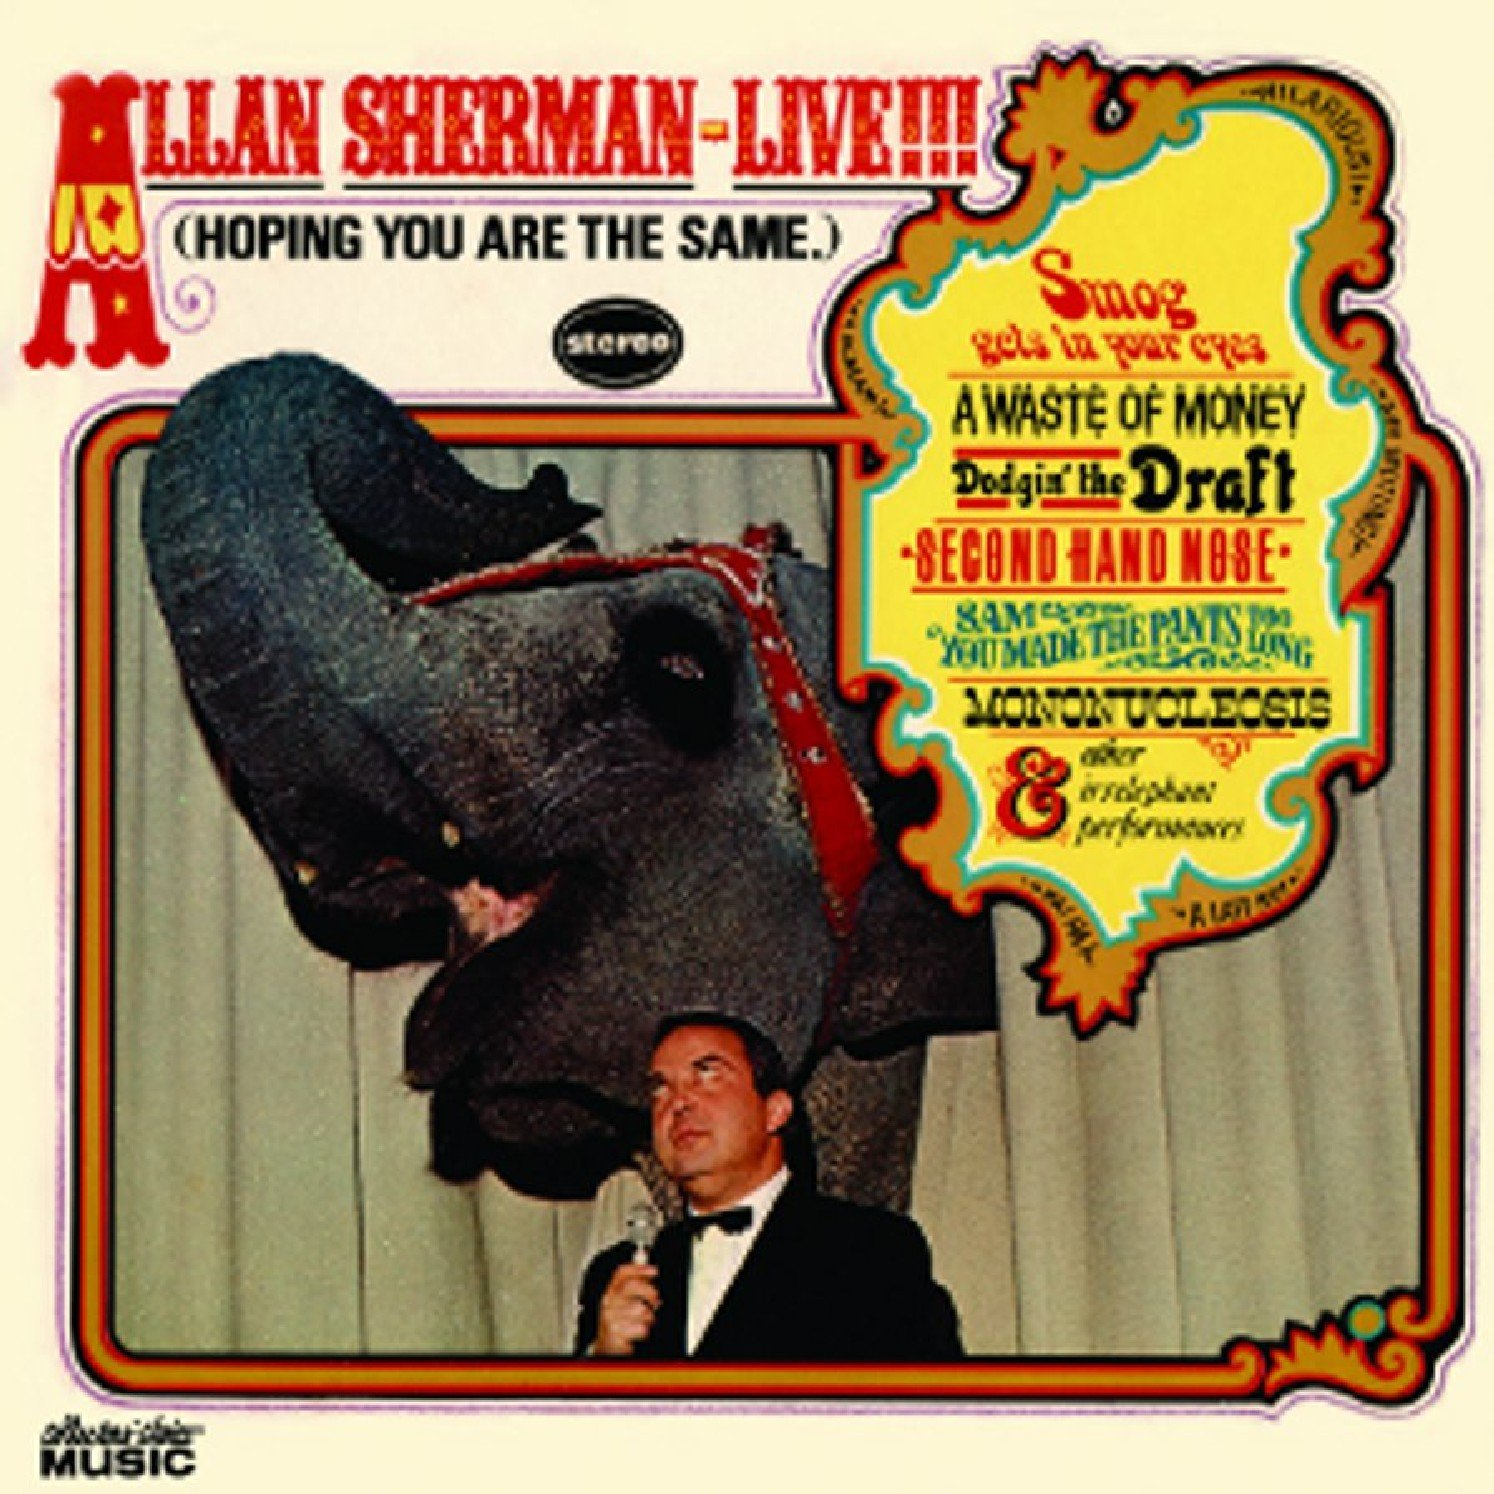 Allan Sherman Live (Hoping You Are the Same) by Collectors' Choice